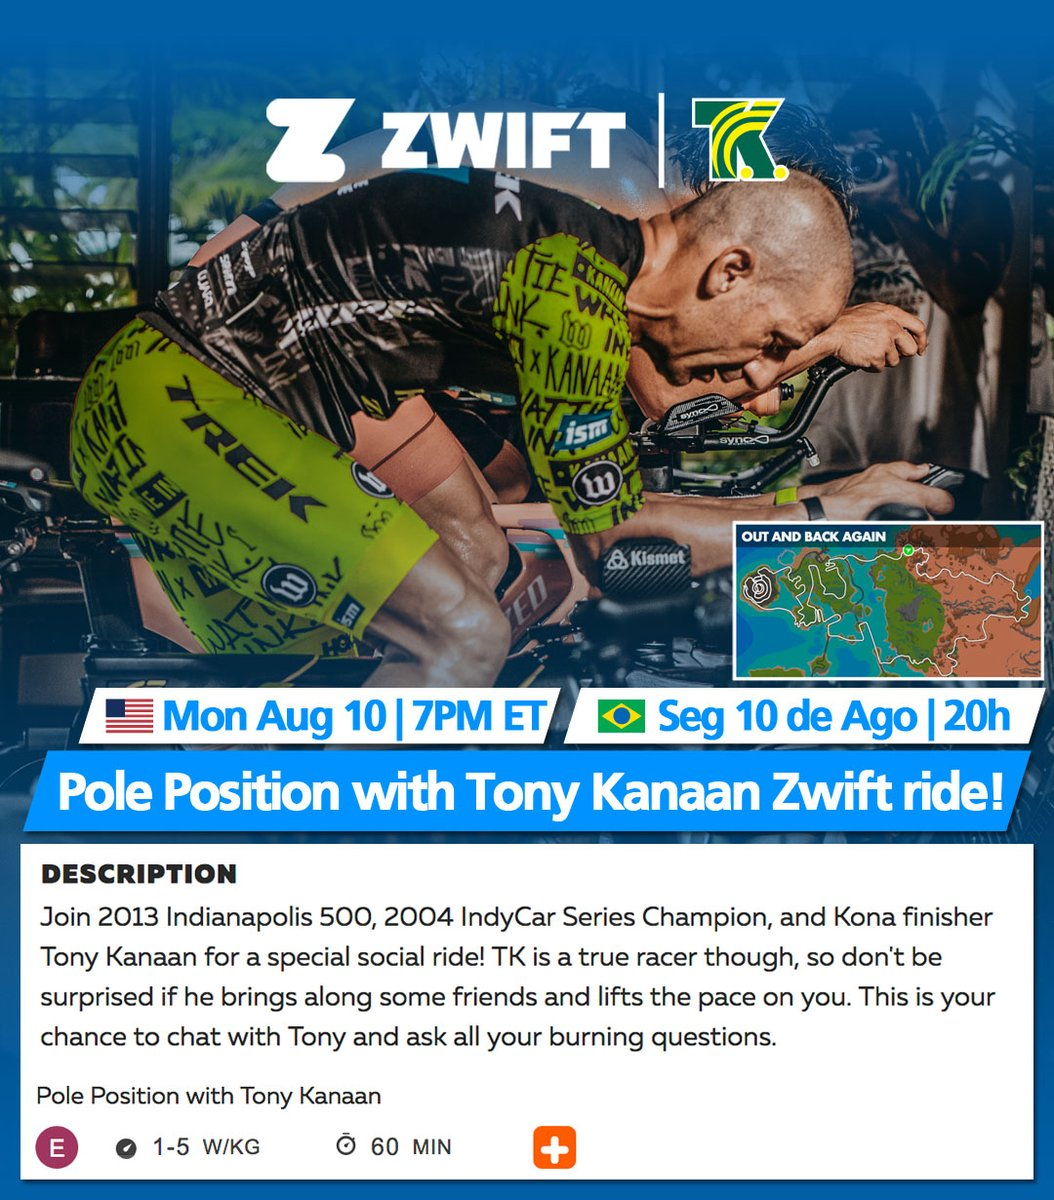 test Twitter Media - 🇺🇸 Join us tonight at 7p ET for my weekly @GoZwift @GoZwiftTri ride. Look the ride up on the Companion app or 👉🏻 https://t.co/zvnUXyJ0nW #GoZwift. Let's ride! https://t.co/R2sSDrJ8t3